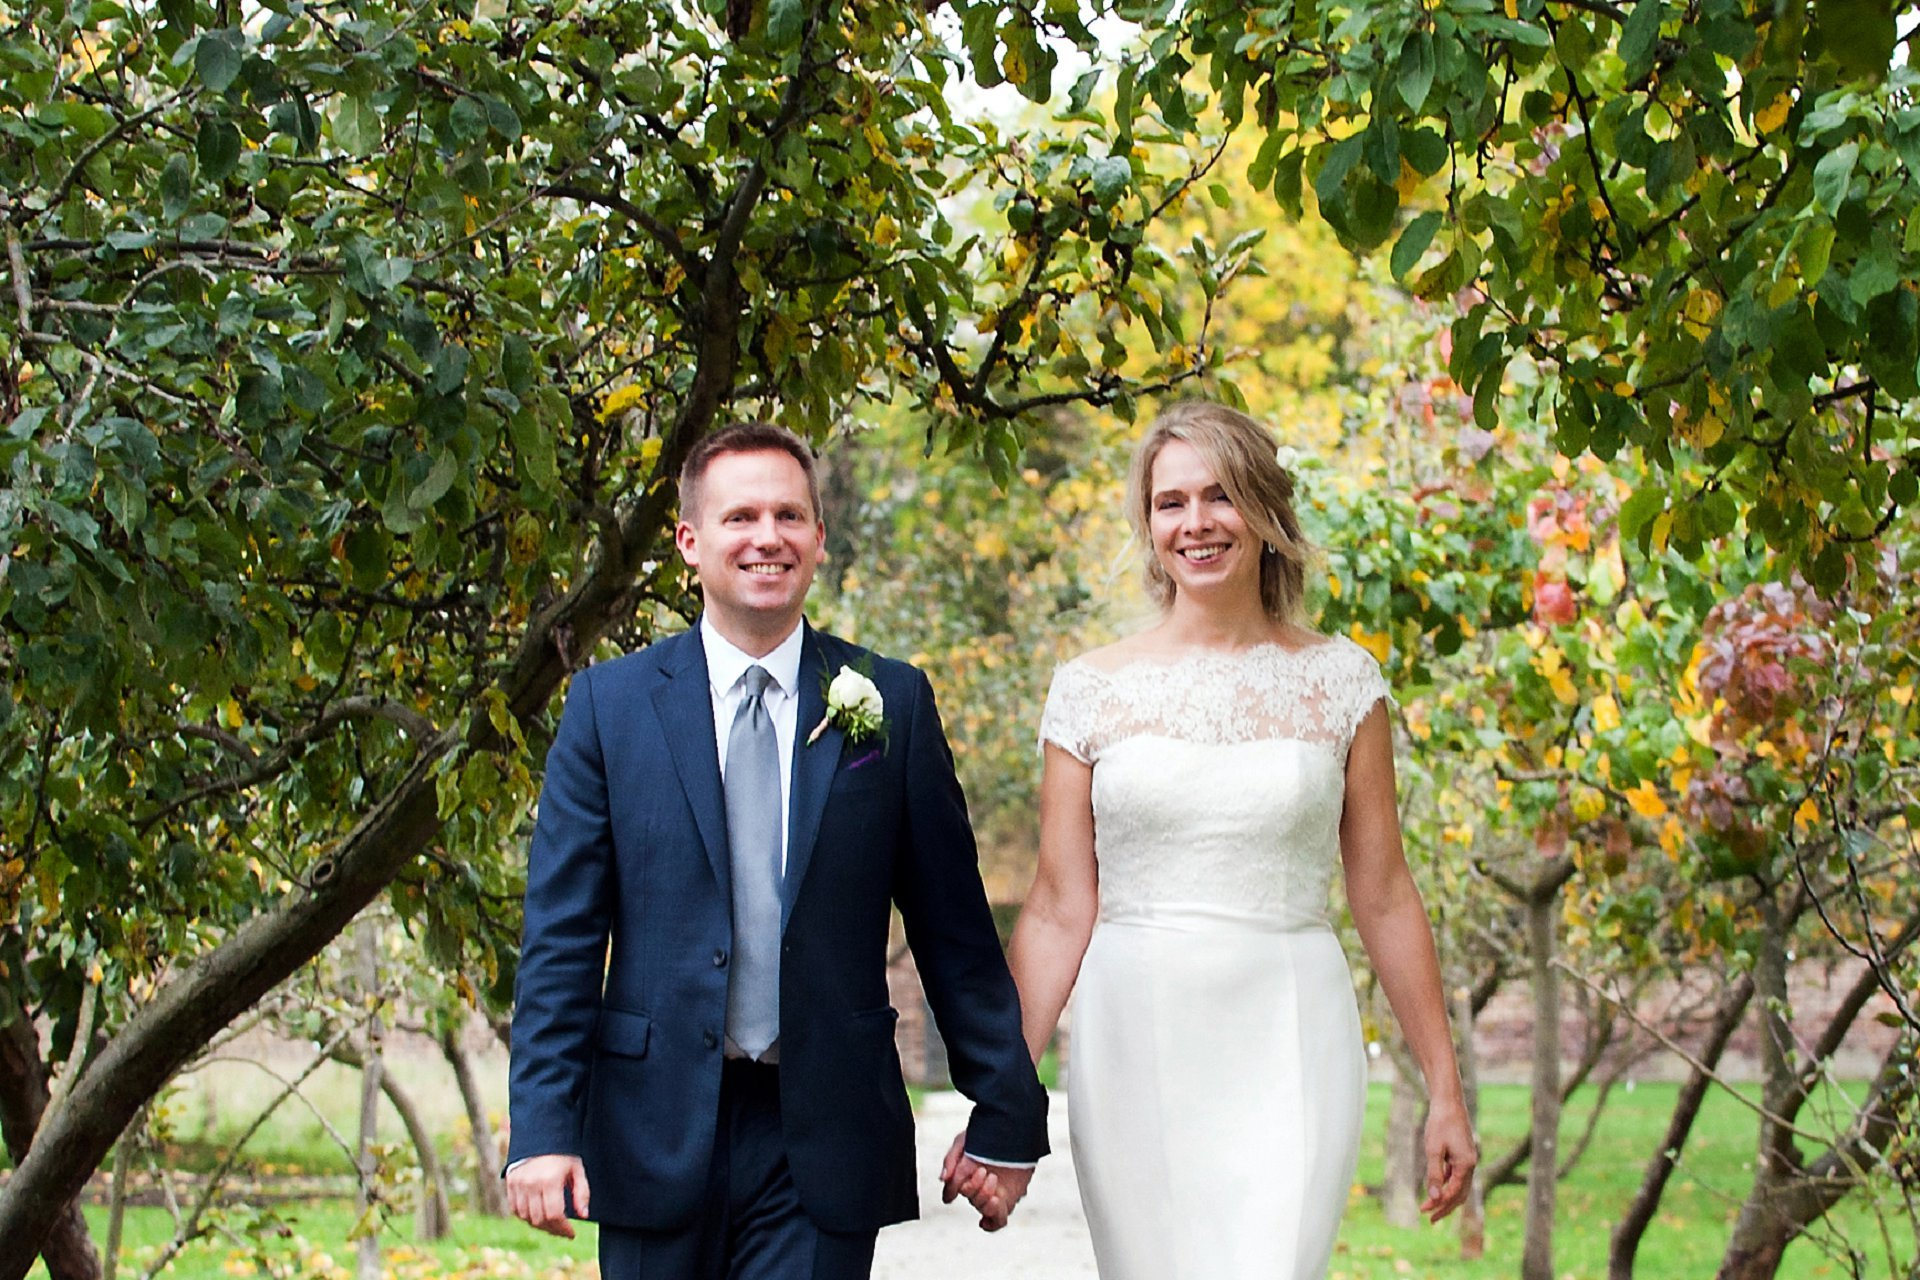 Fulham Palace Wedding Photography - the ancient orchard in Fulham Palace's walled garden makes a great backdrop for wedding photographs, especially with teh Autumn colours